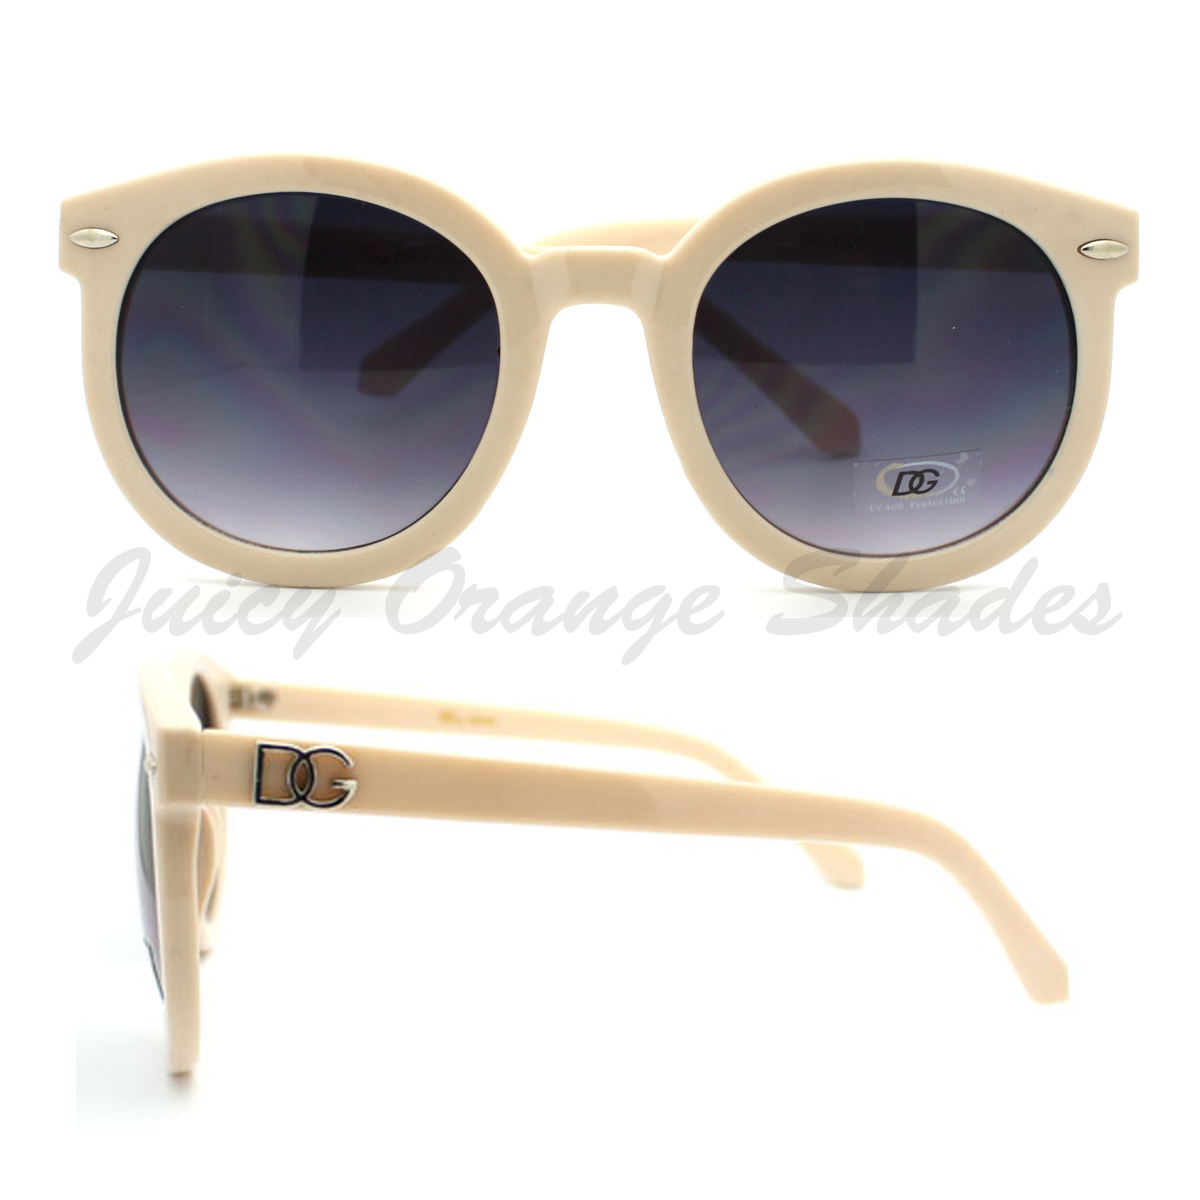 CIRCLE ROUND Sunglasses Womens HOT CELEBRITY Fashion CUTE CHIC Style SHADES